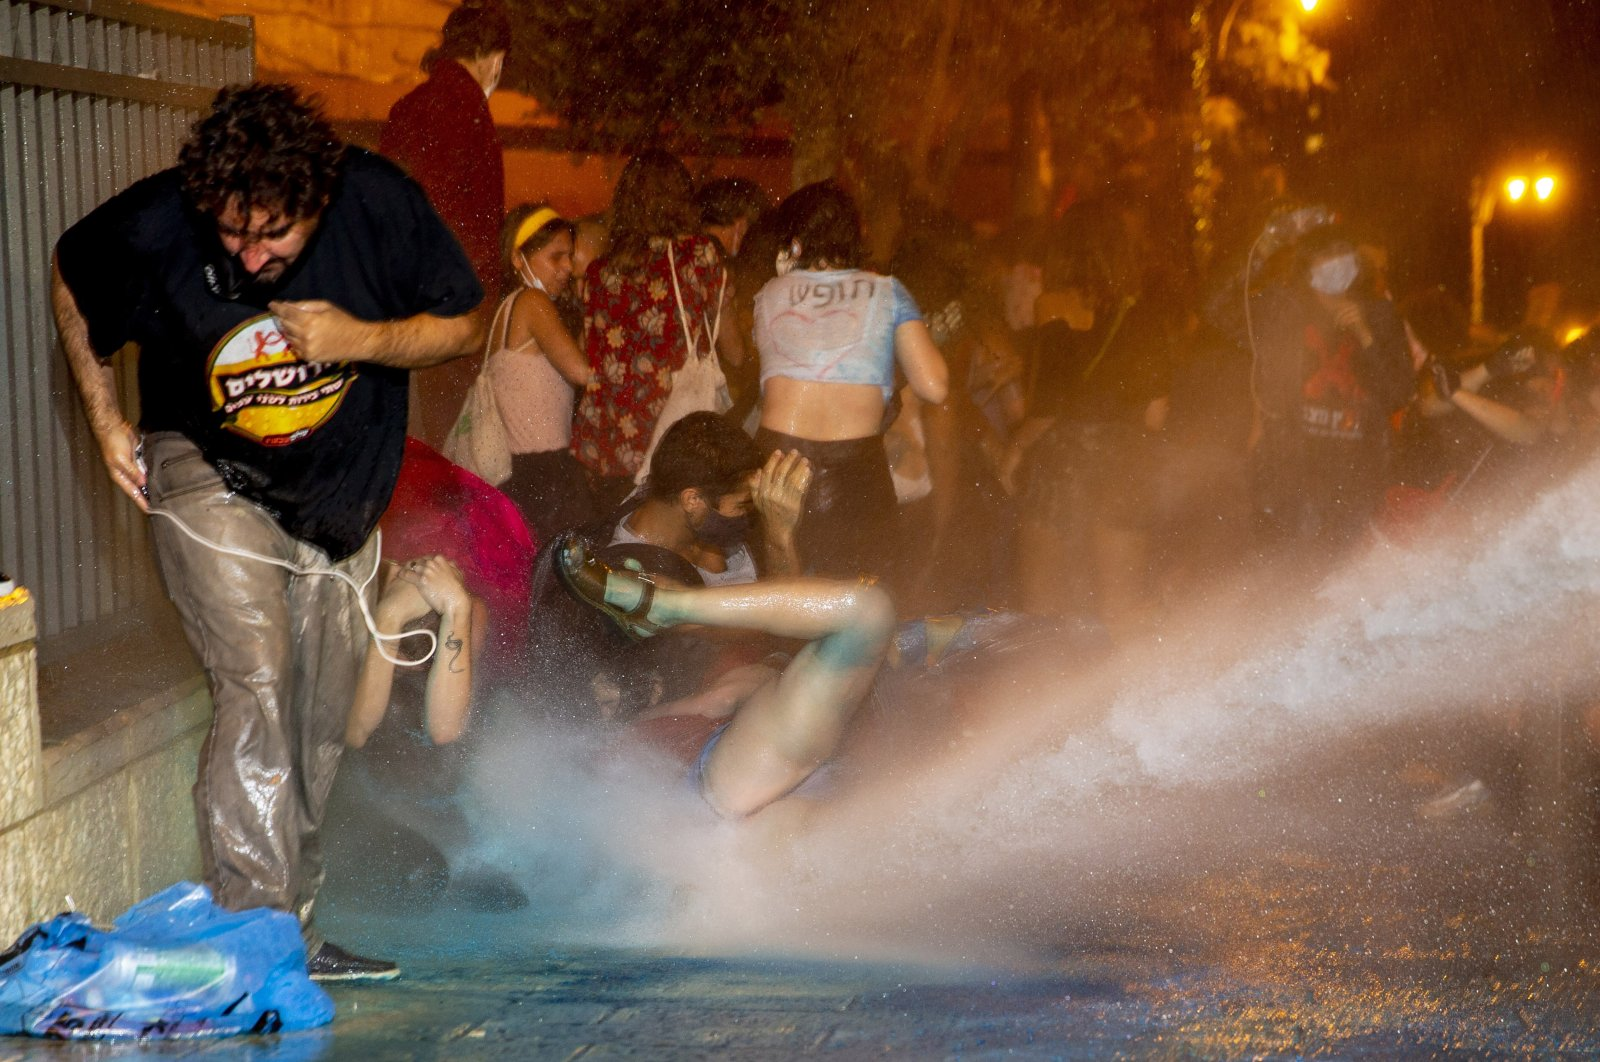 Police use a water cannon to disperse demonstrators during a protest against Israel's Prime Minister Benjamin Netanyahu outside his residence in Jerusalem, July 22, 2020. (AP Photo)